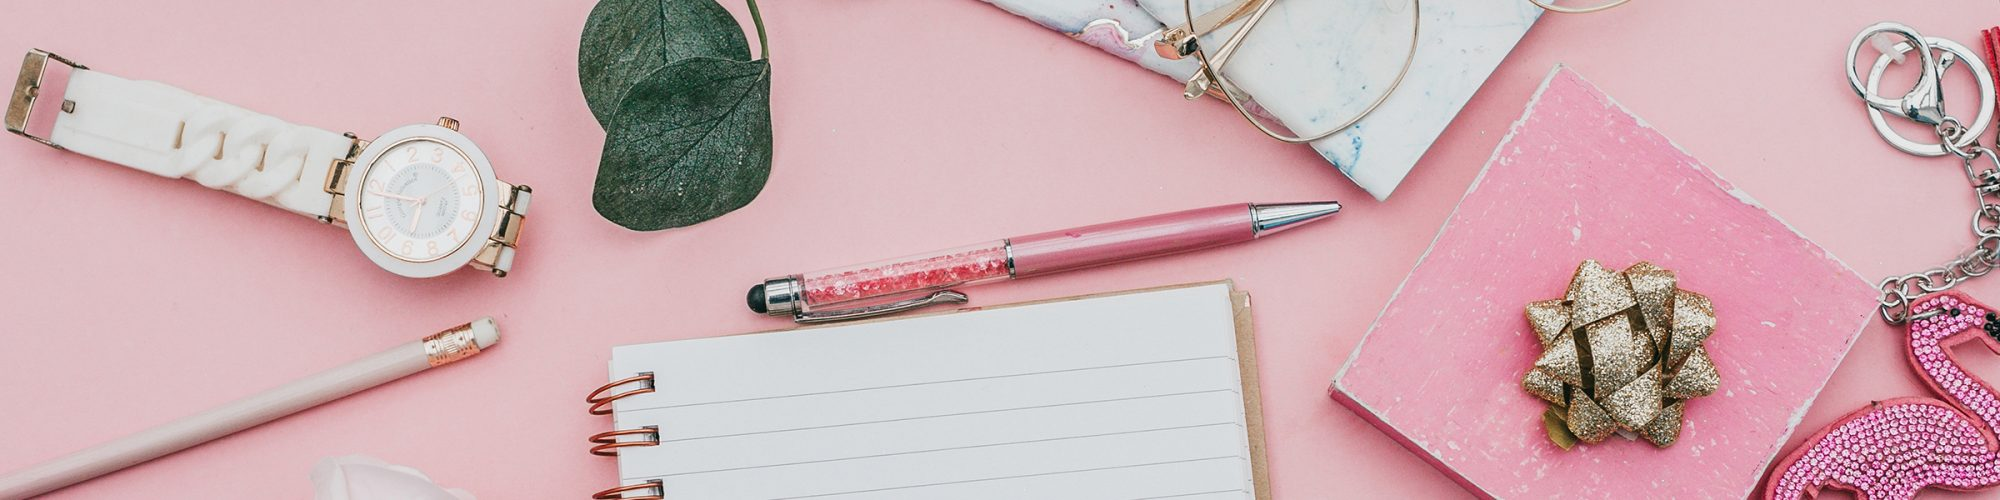 White notebook and pink pen on a pink background